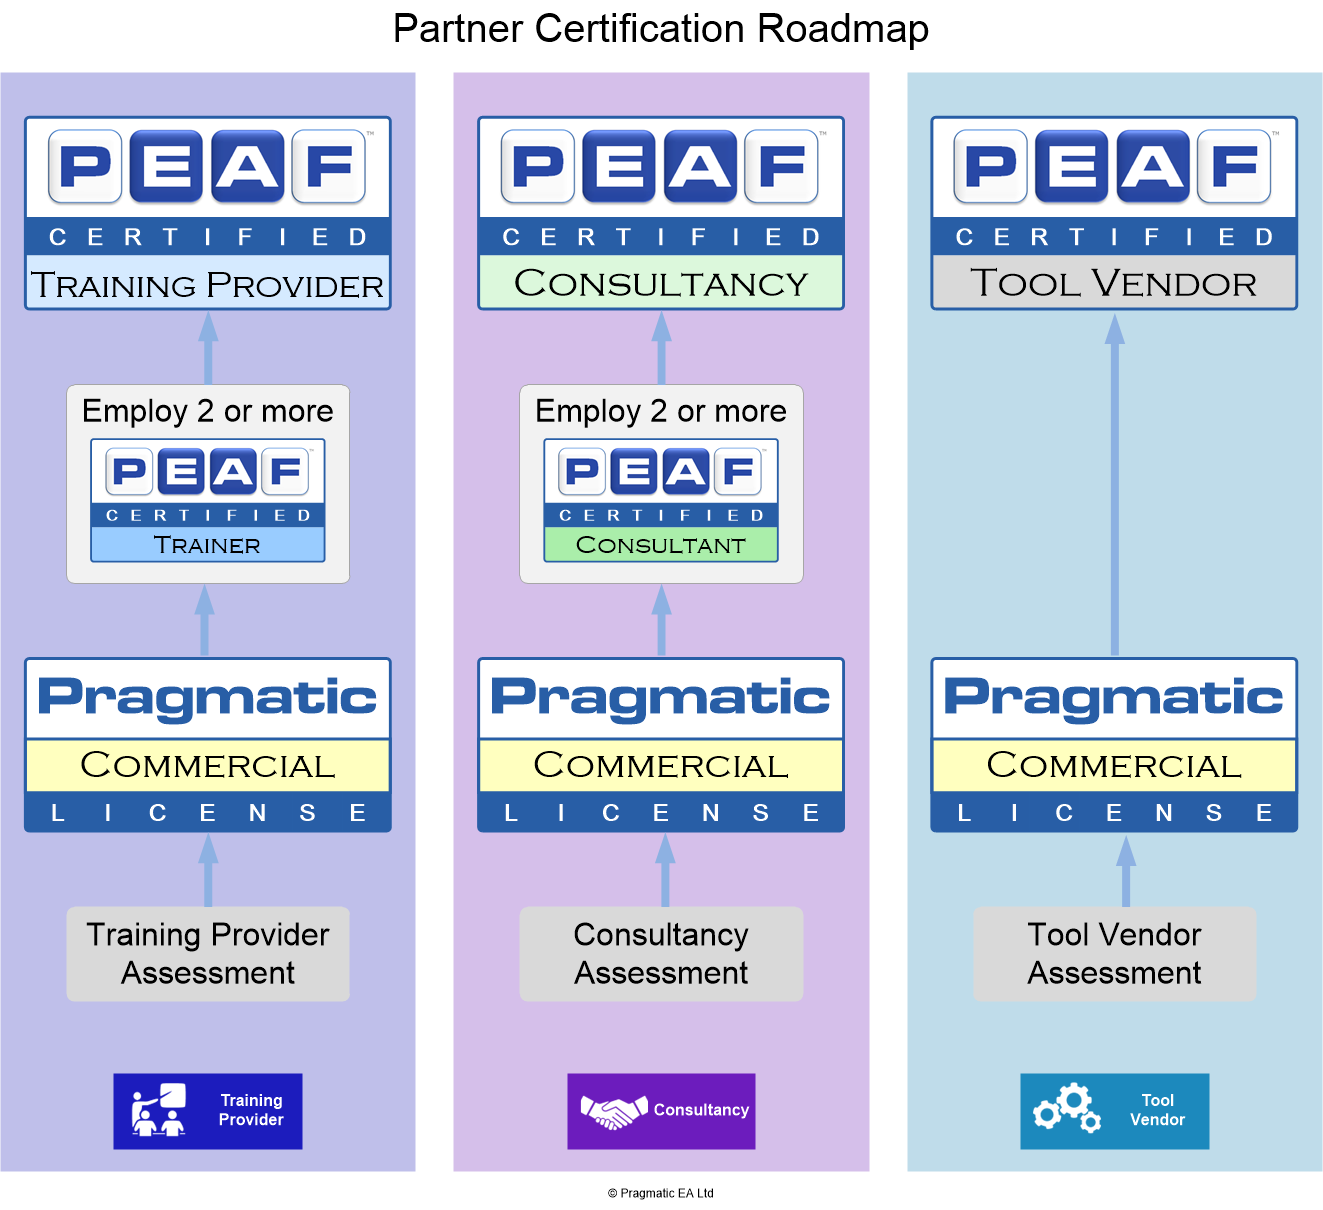 PEAF Certification For Partners